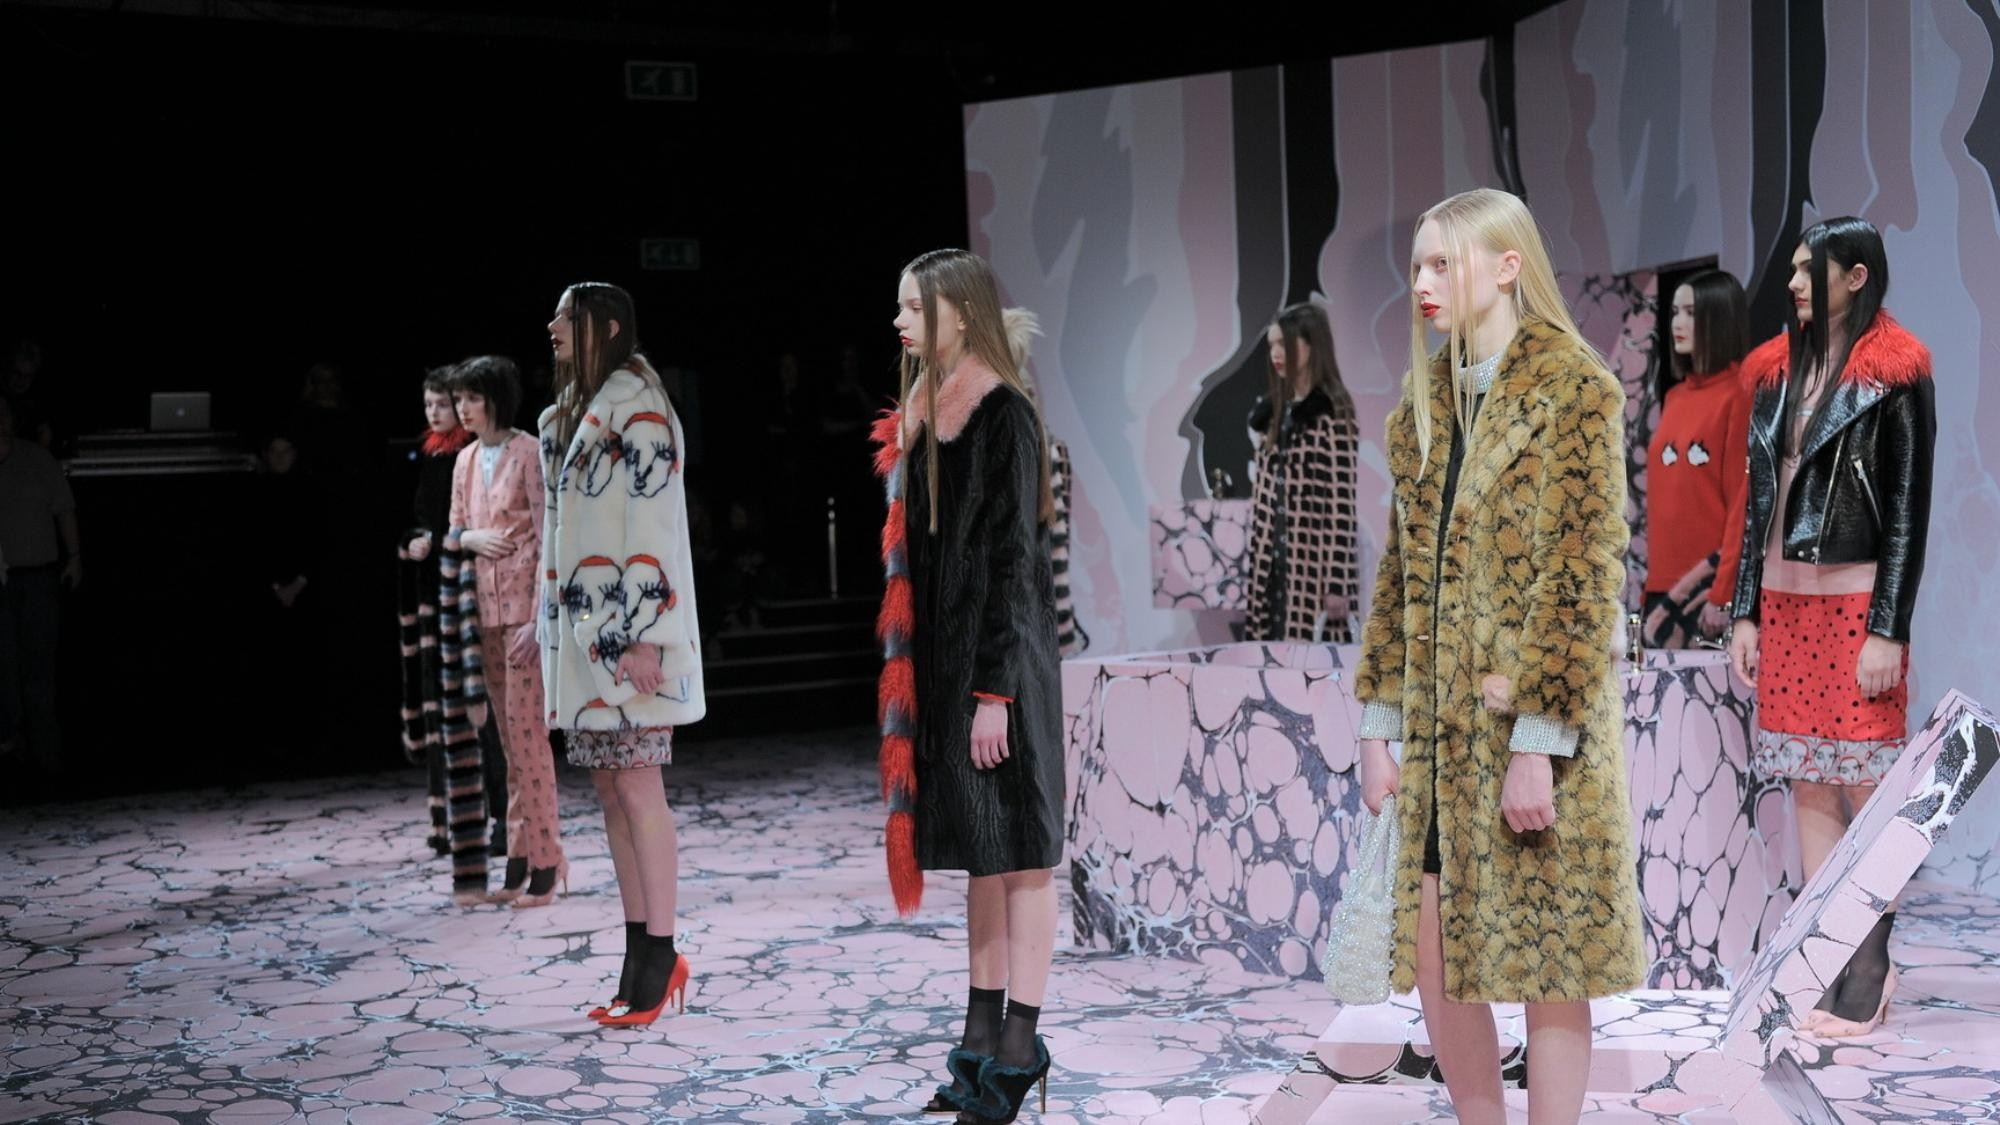 ​shrimps' hannah weiland on her decision not to use real fur